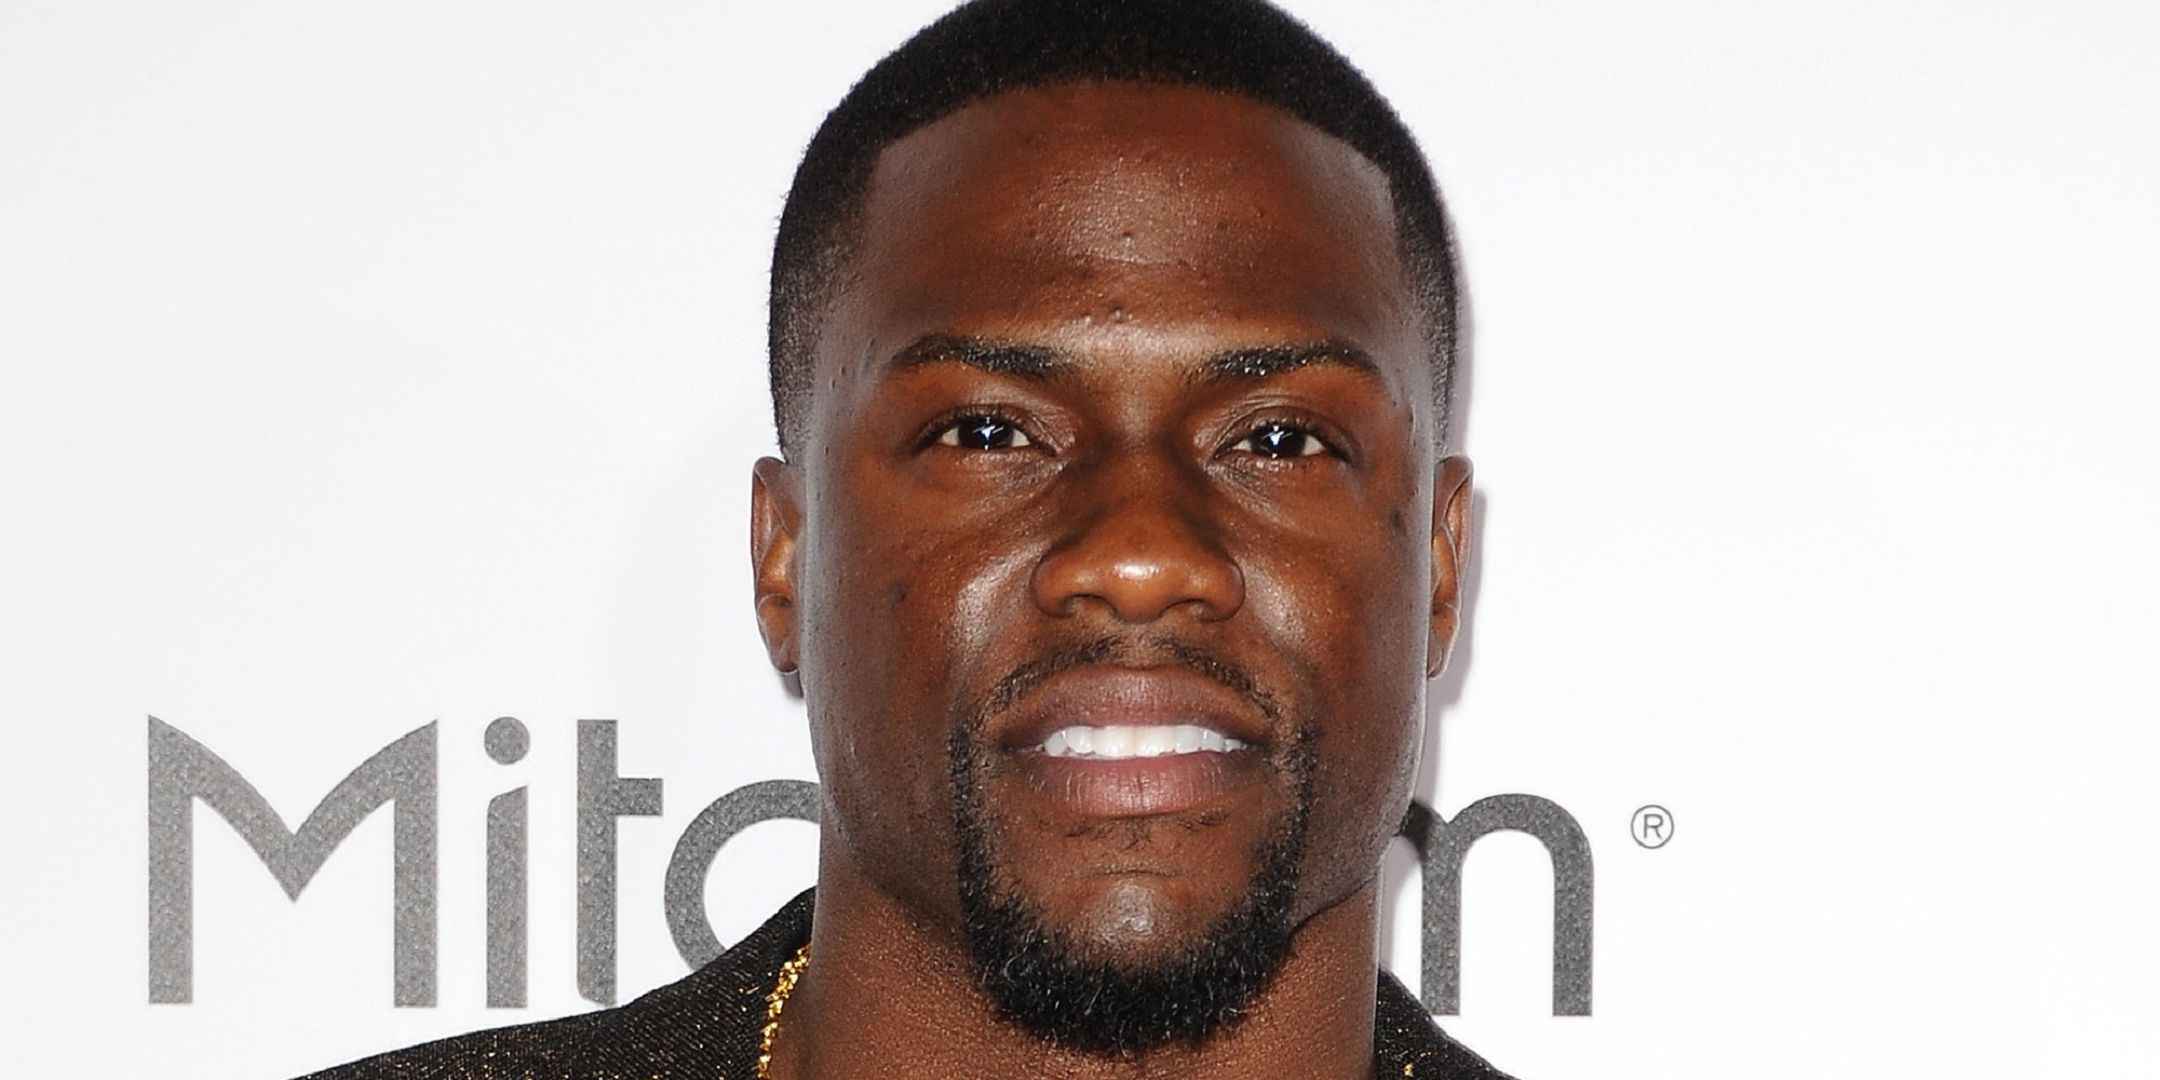 Kevin Hart Wallpaper For Computer